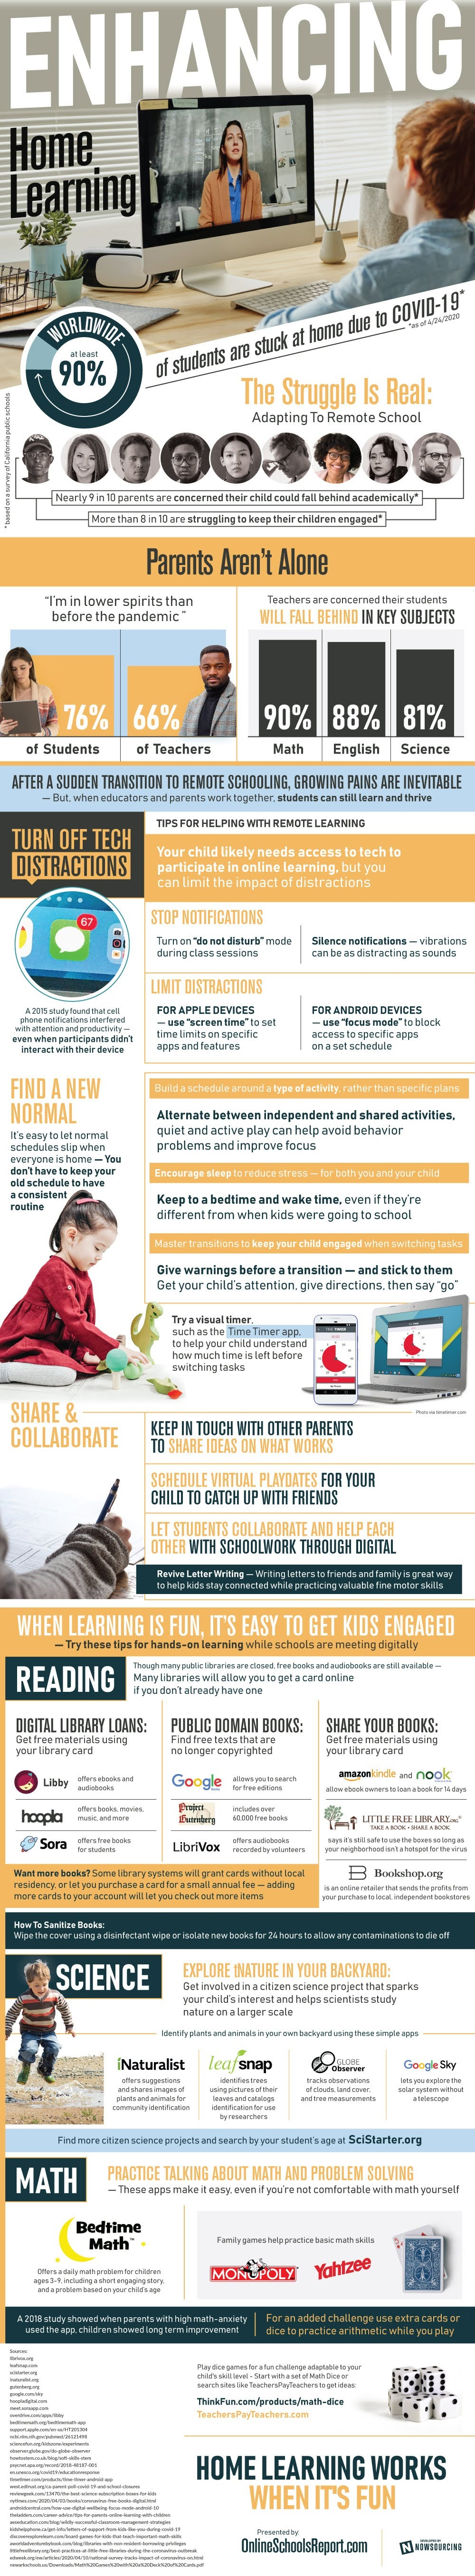 enhancing-home-learning-infographic